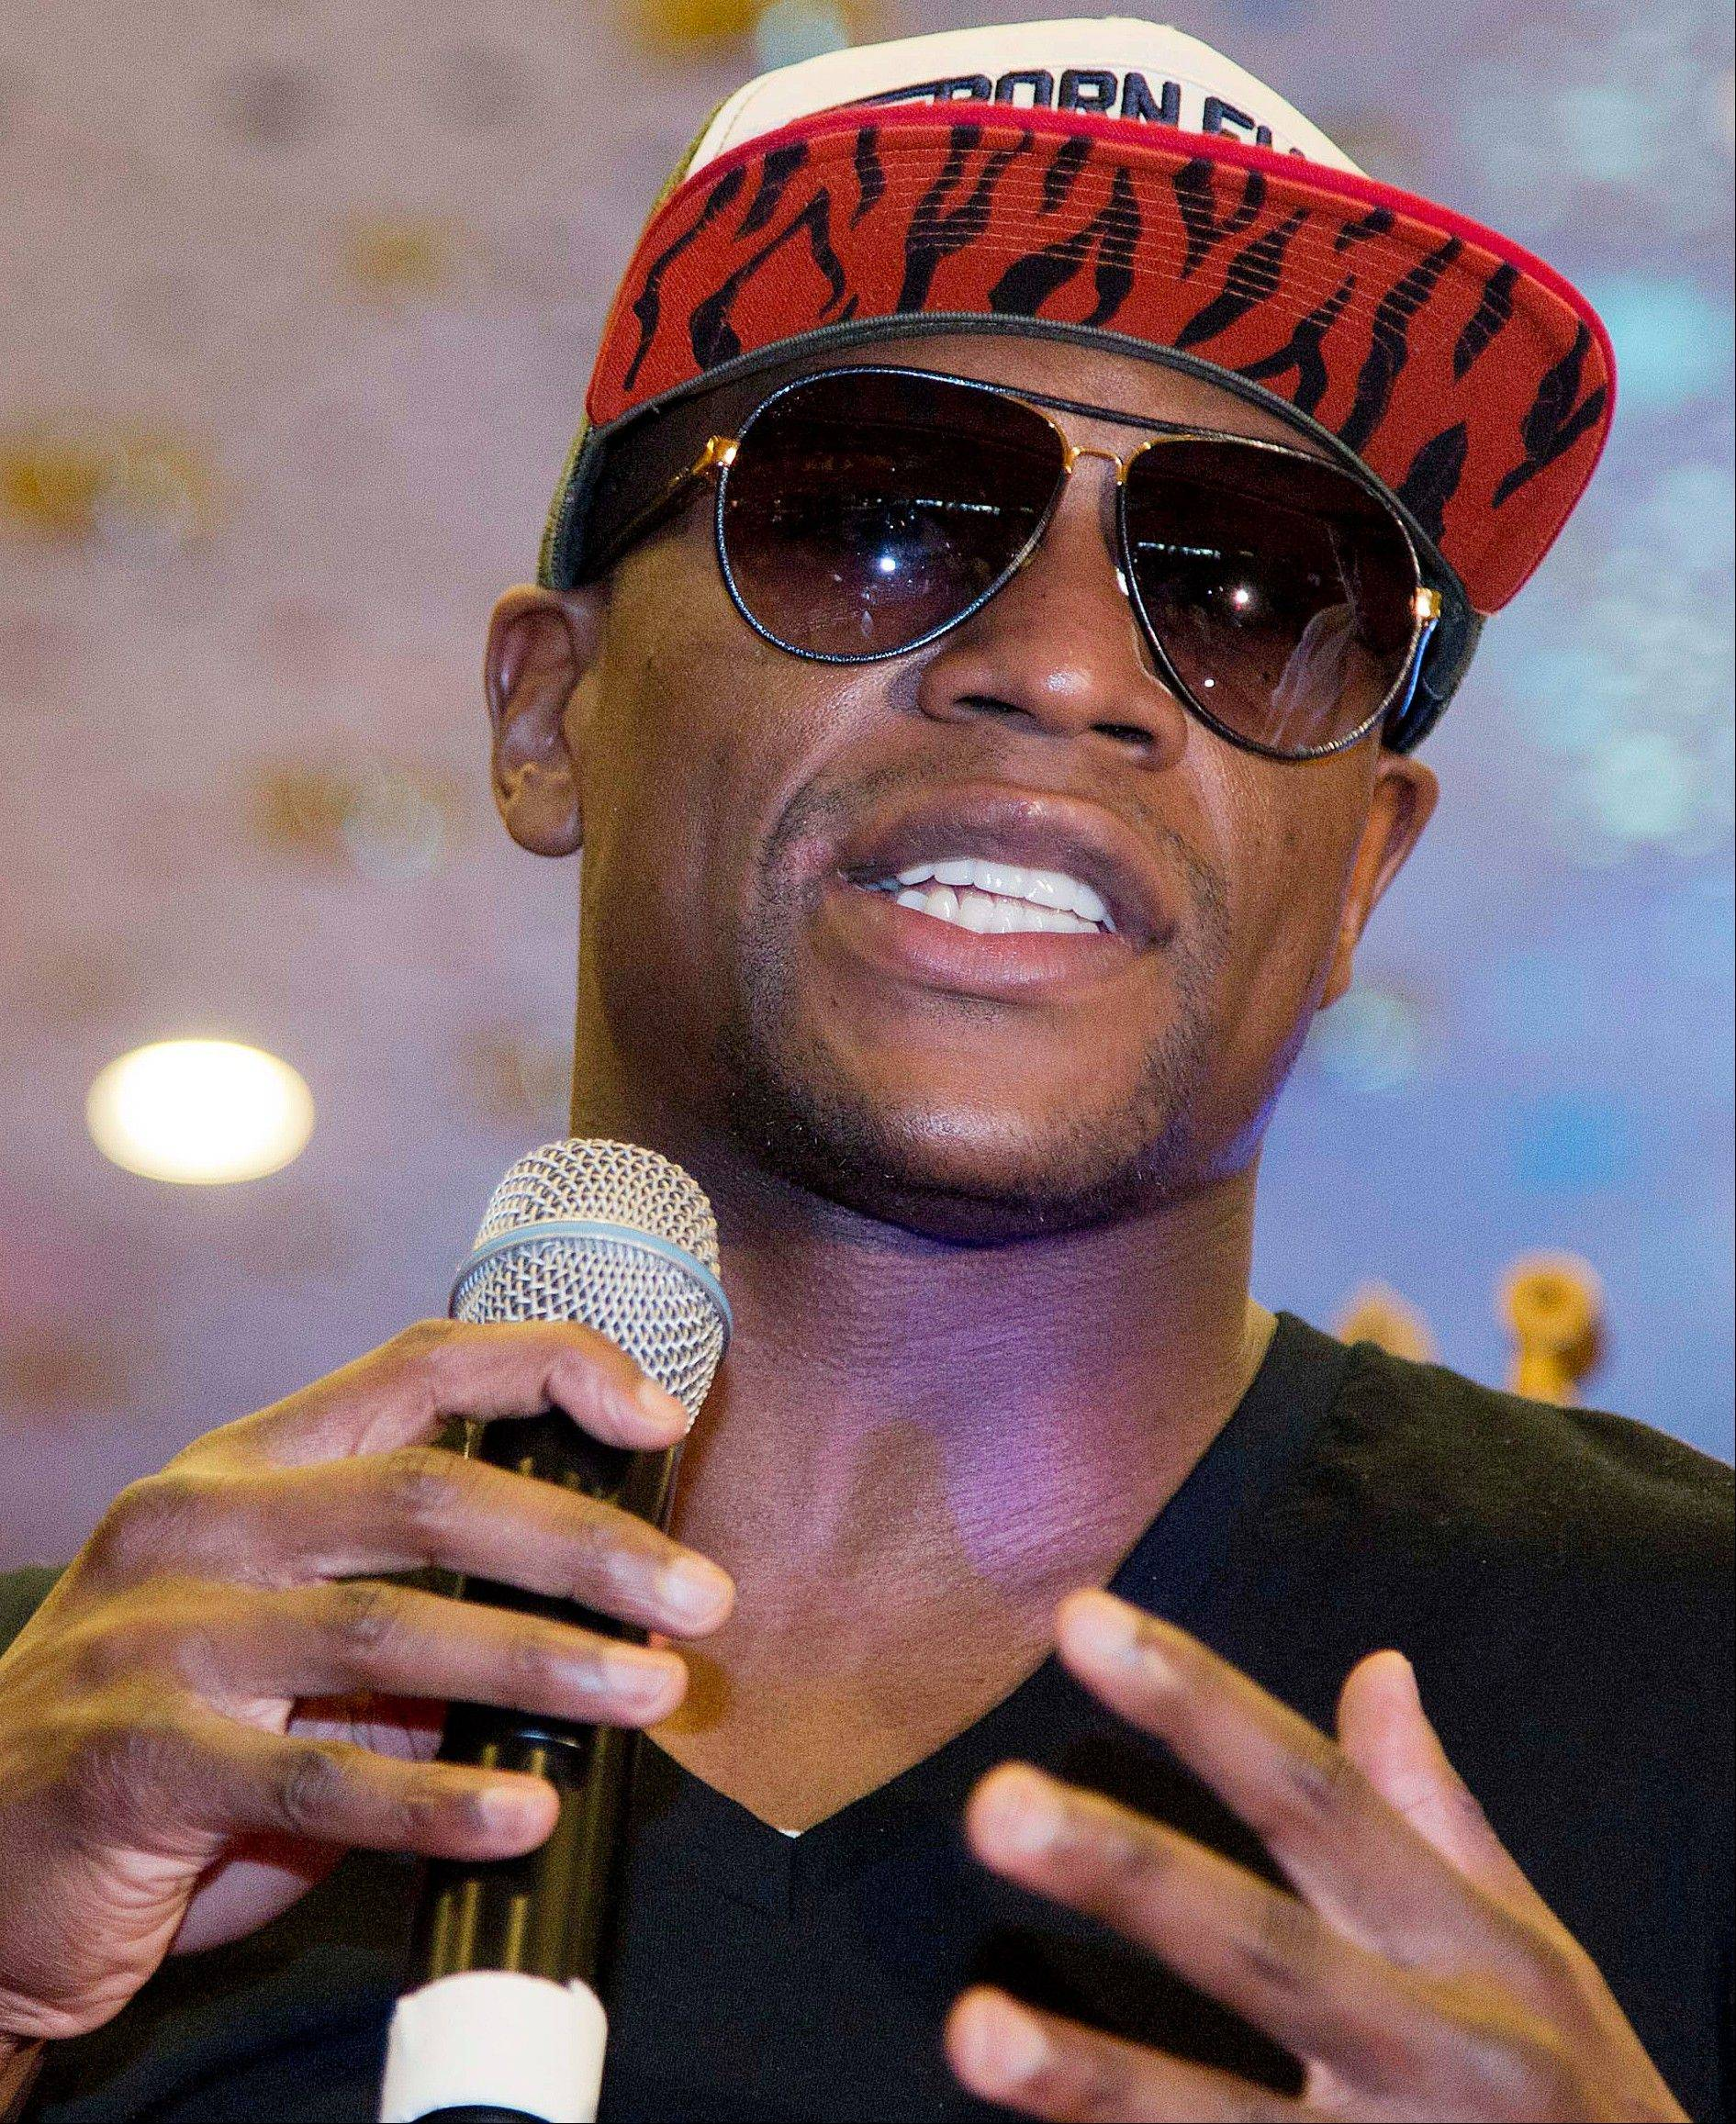 Floyd Mayweather Jr., talk